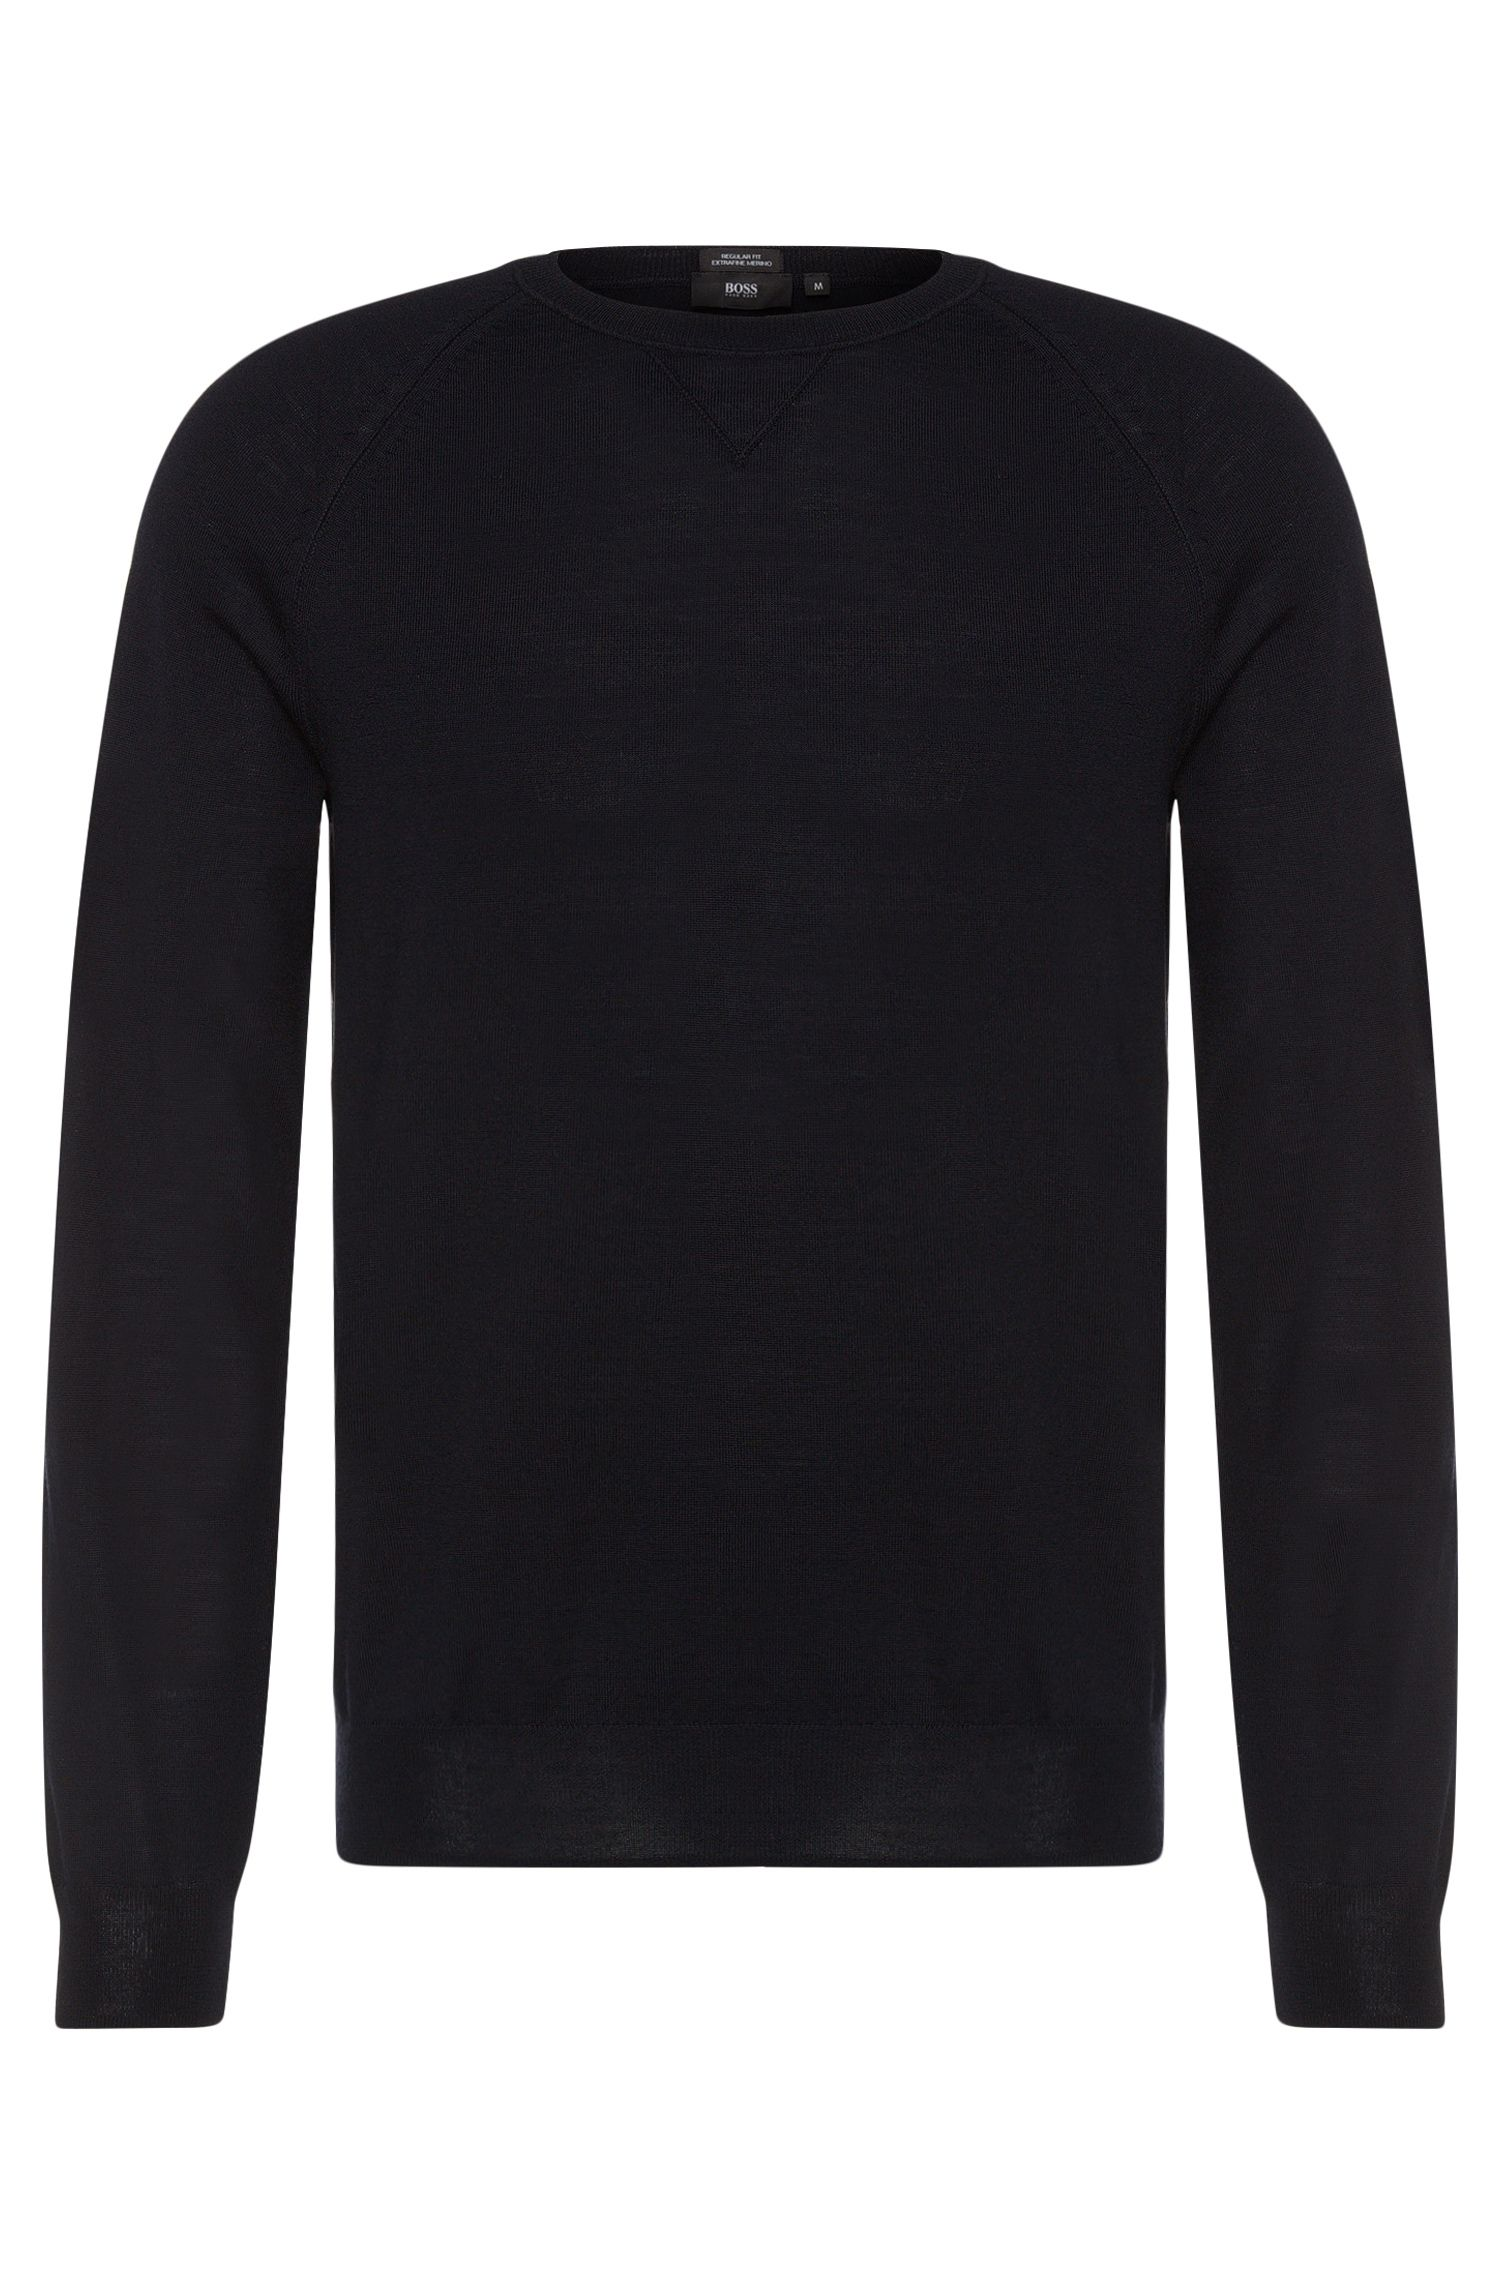 Unifarbener Travel Line Regular-Fit Pullover aus Schurwolle: 'Barni'